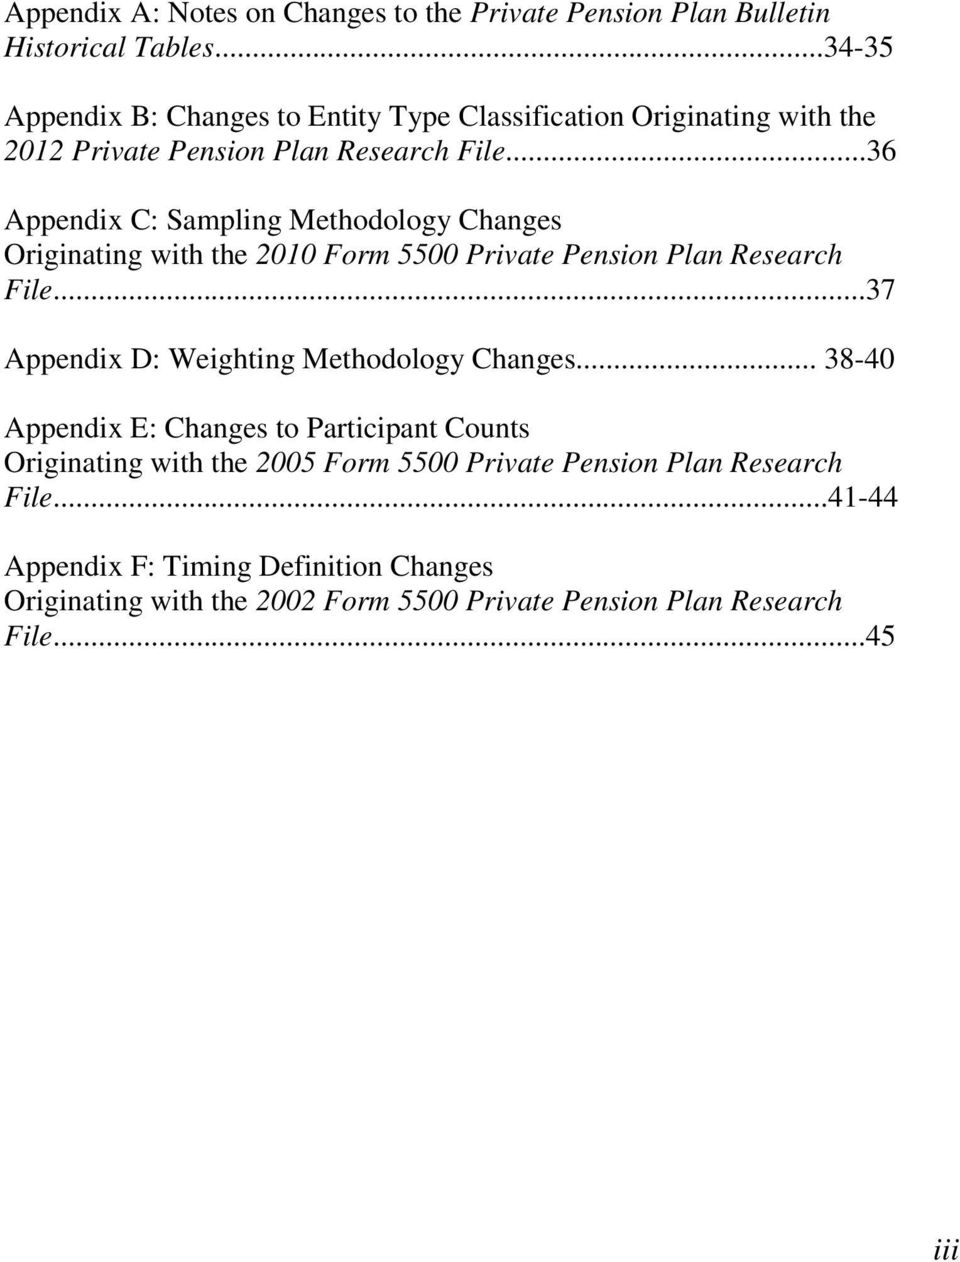 ..36 Appendix C: Sampling Methodology Changes Originating with the 2010 Form 5500 Private Pension Plan Research File.